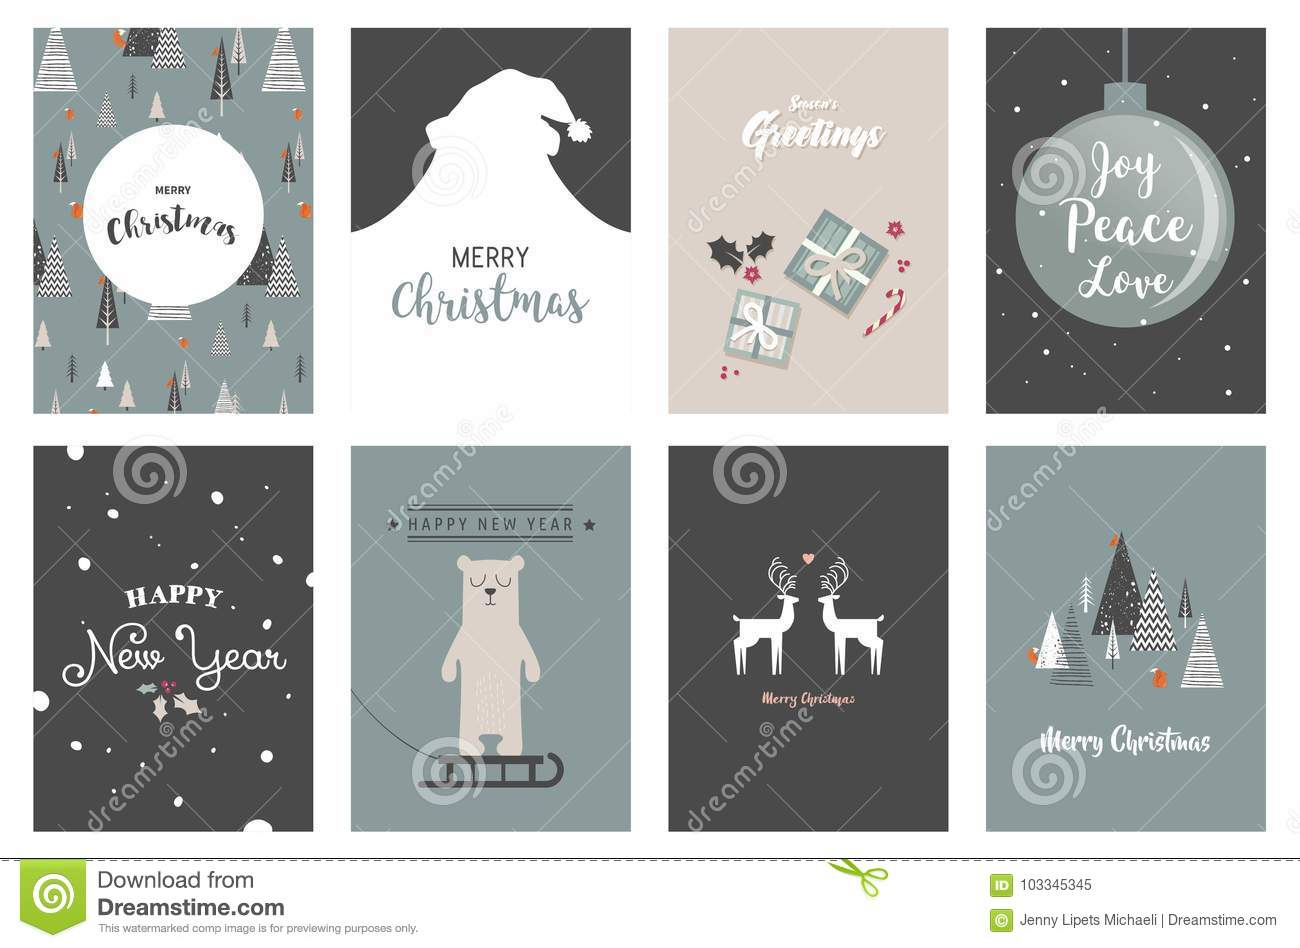 merry christmas cards illustrations and icons lettering design collection no 5 - No Photo Christmas Cards